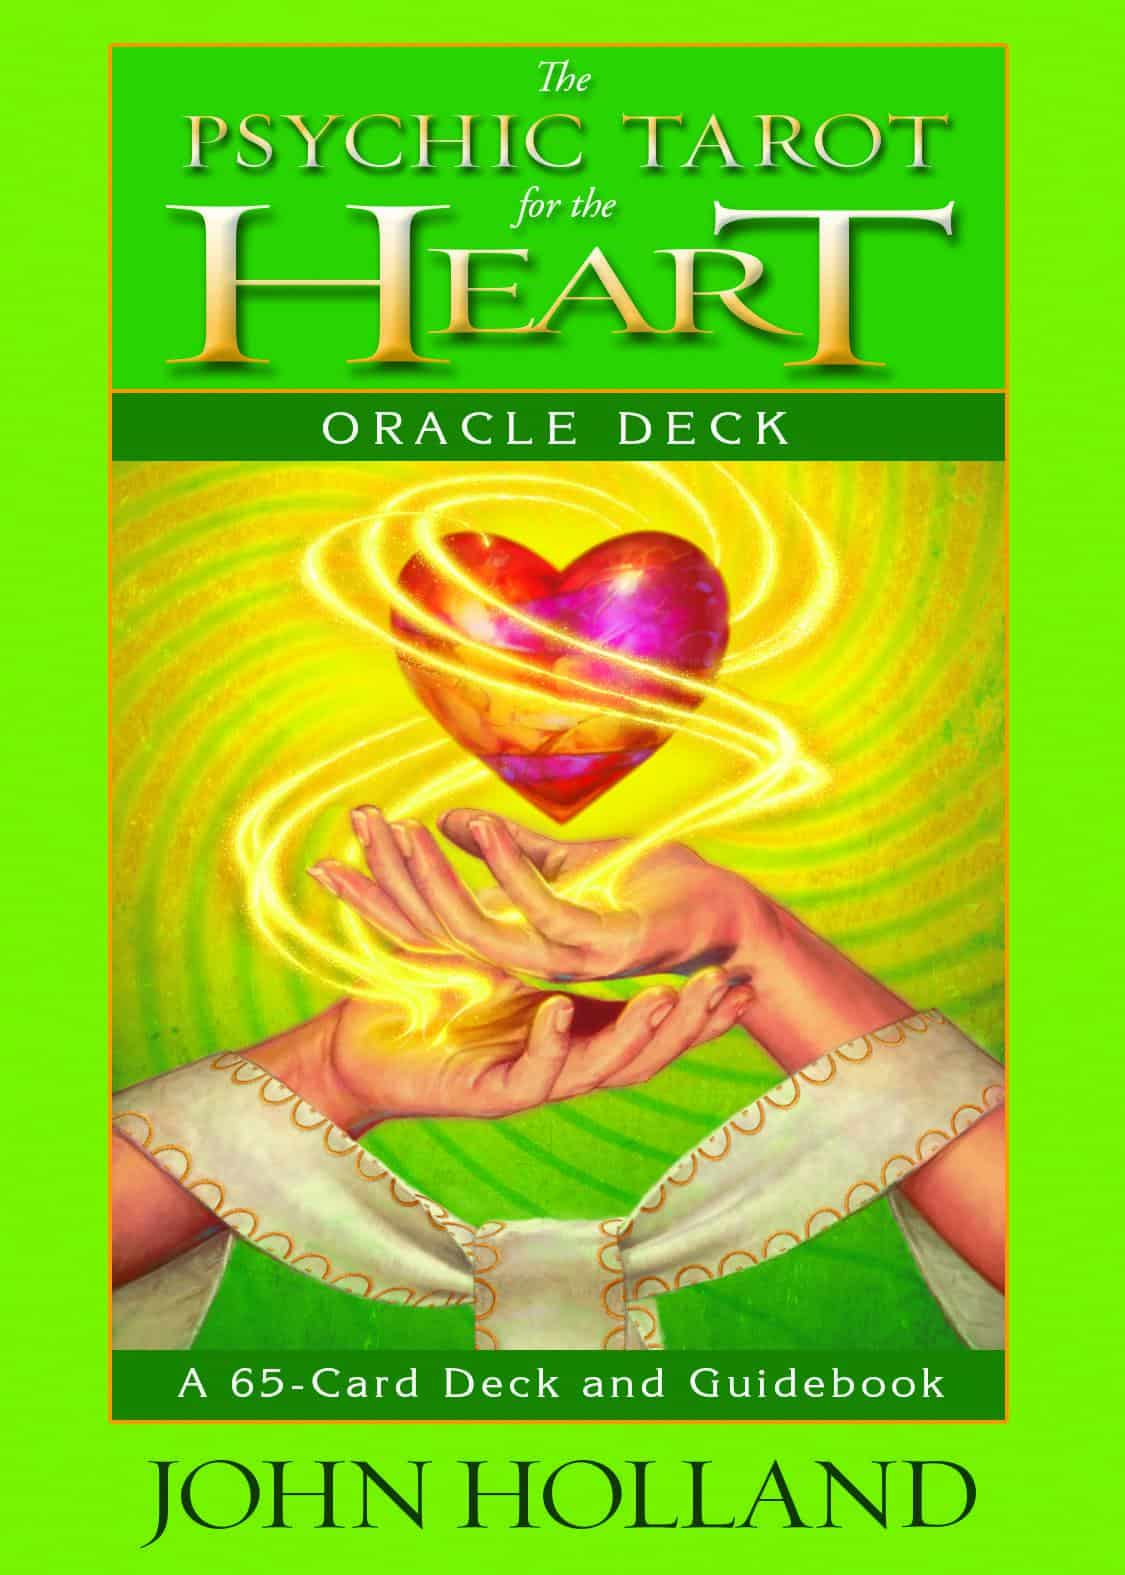 Psychic Tarot Cards Meanings: Shop Psychic Tarot For The Heart Oracle Deck